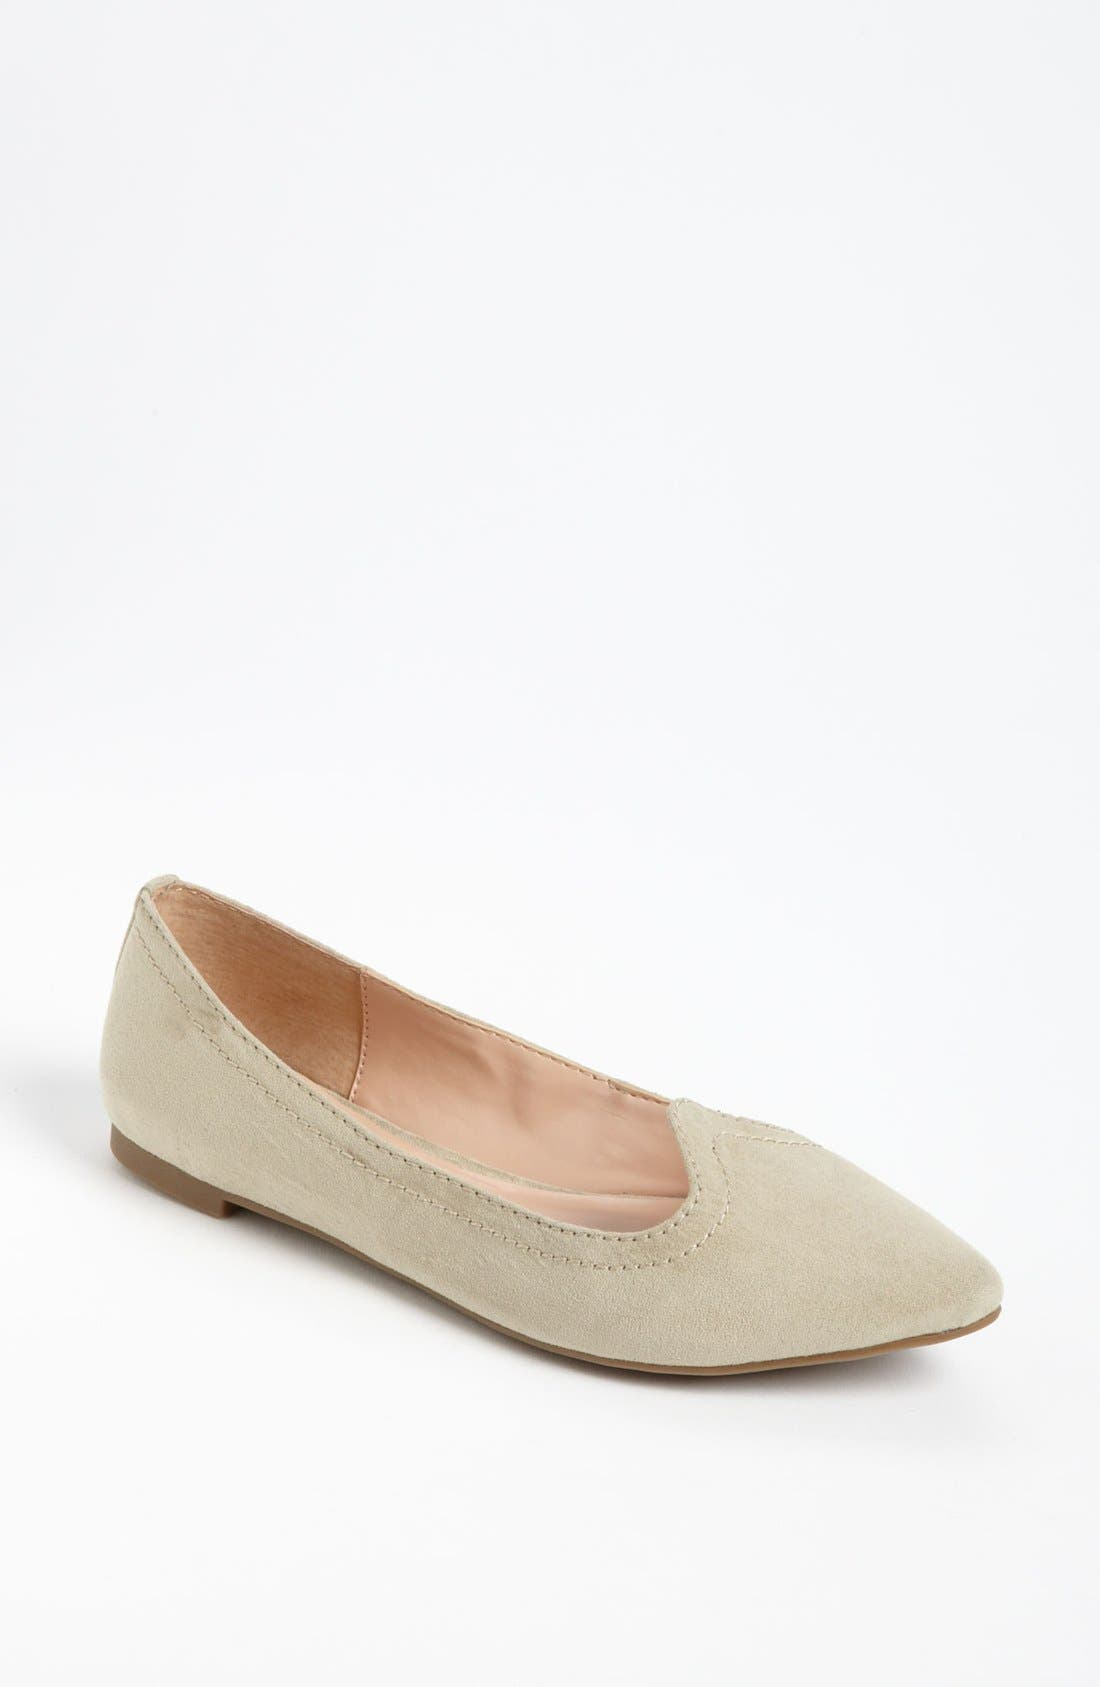 Alternate Image 1 Selected - Sole Society 'Sage' Flat